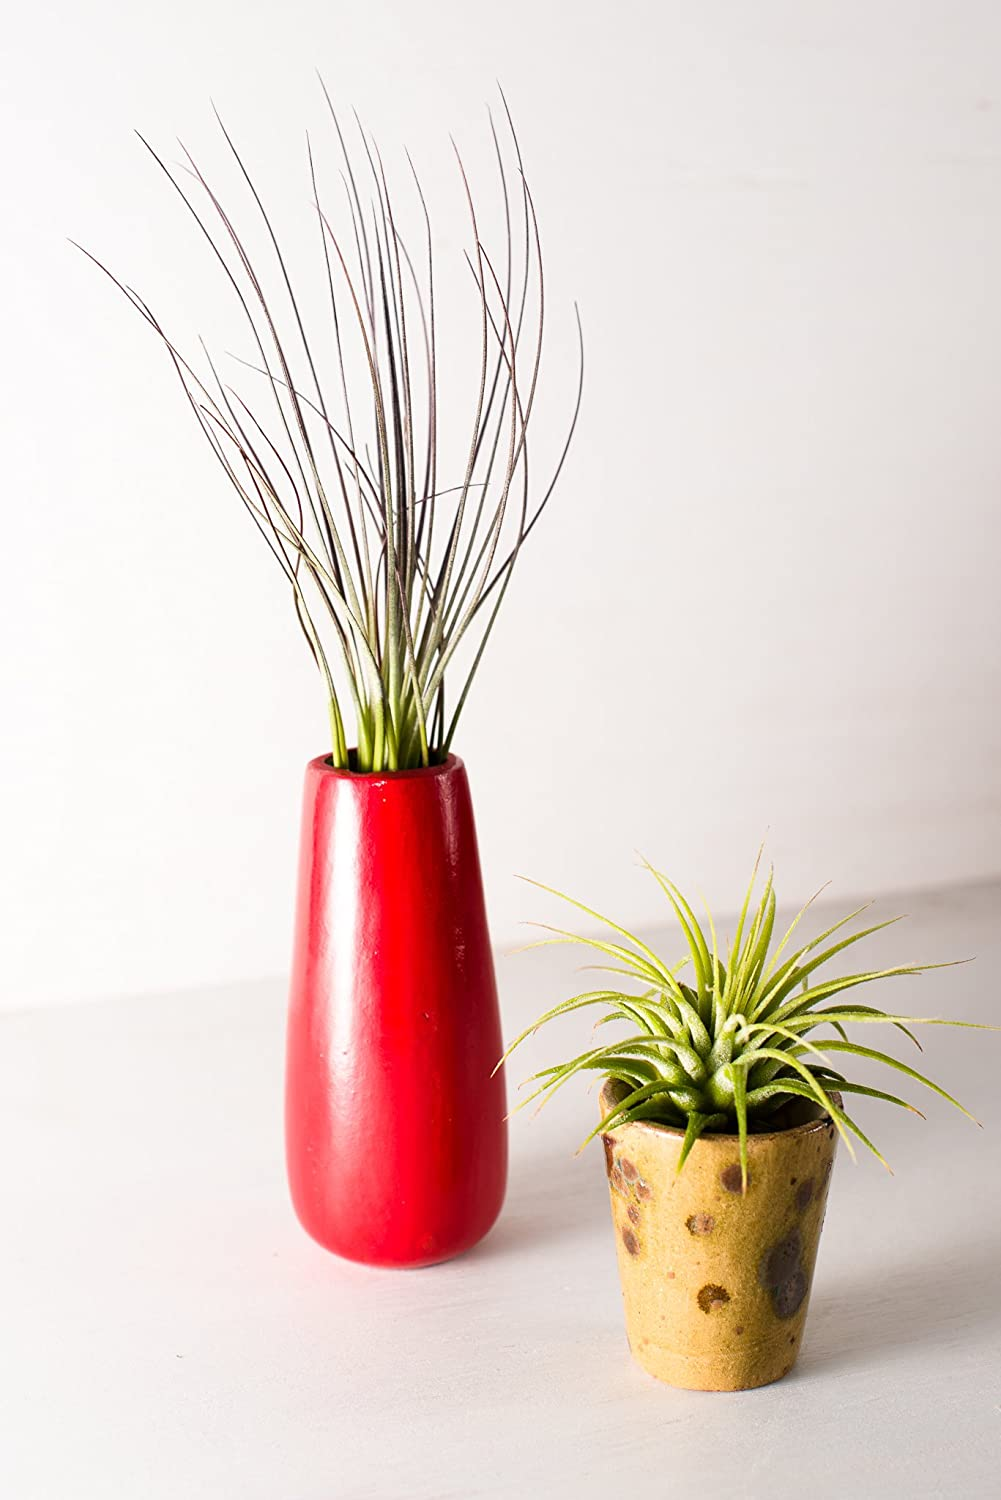 Hinterland Trading Air Plant Jucifolia and Ionantha Duo in Lovely Ceramic Vases